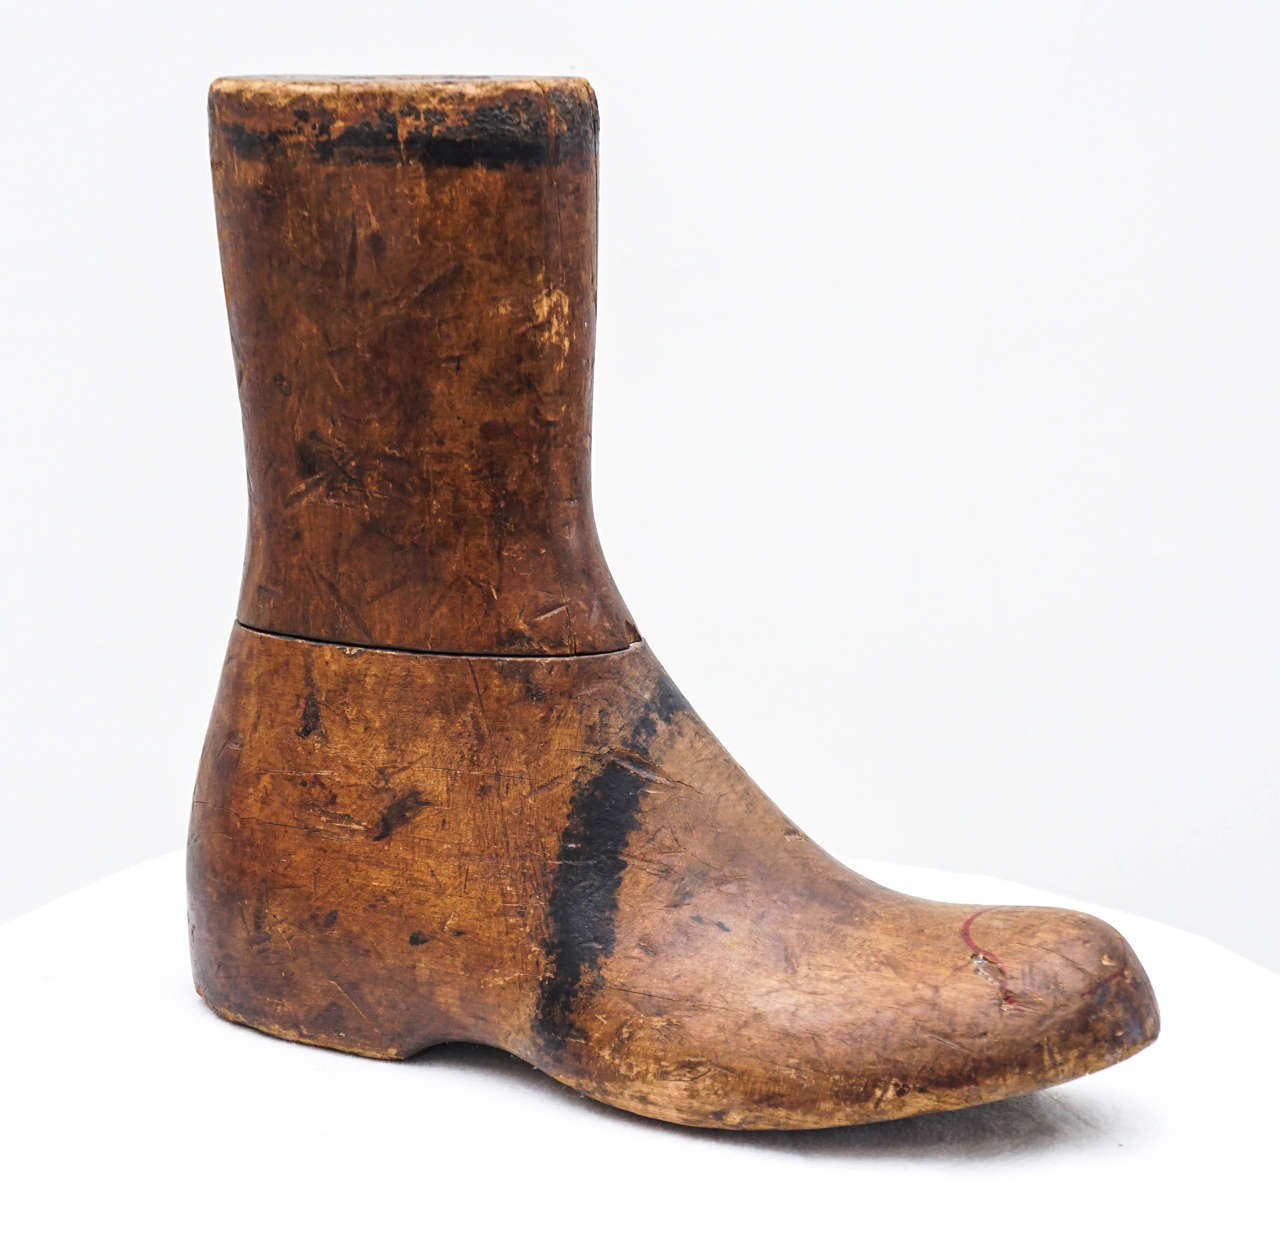 this wooden boot has very nice age to it.